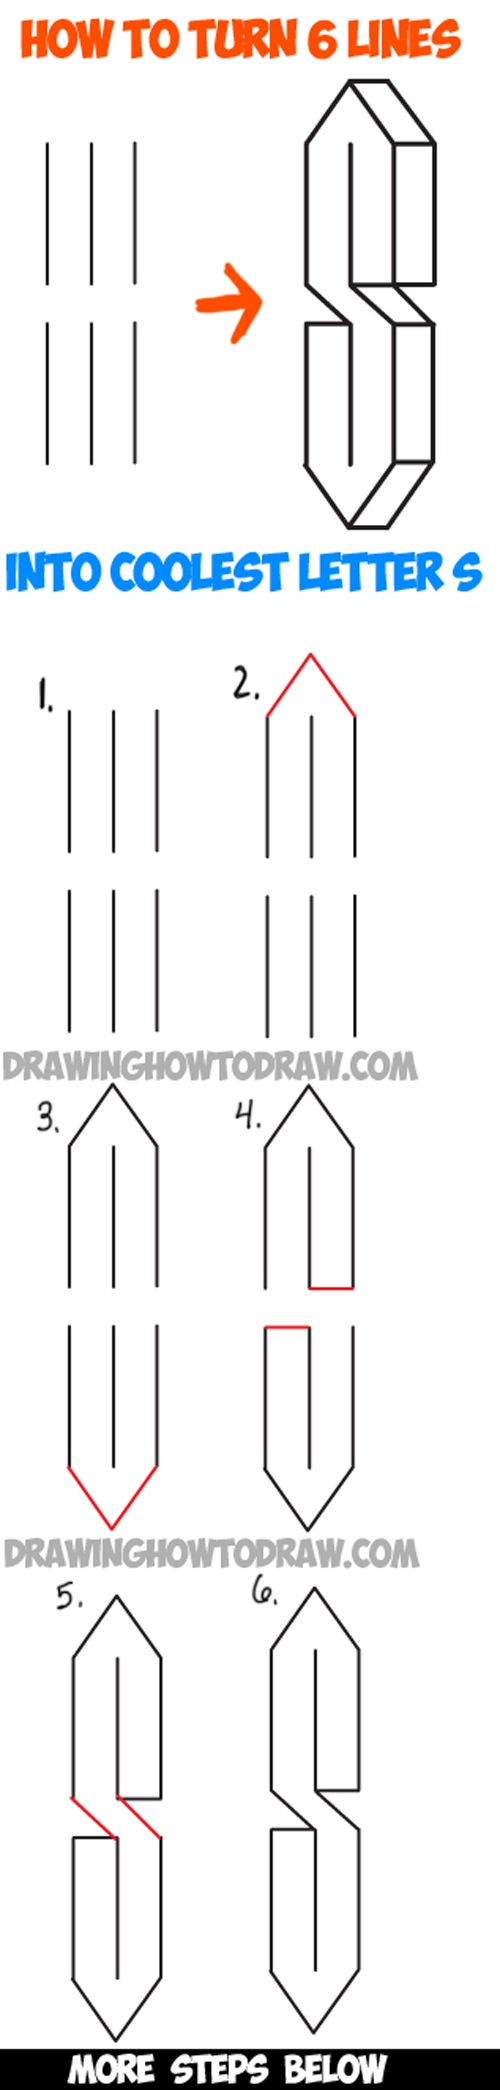 Learn How to Turn 6 Lines into The Coolest Letter S - Easy Step by Step Drawing Tutorial for Kids